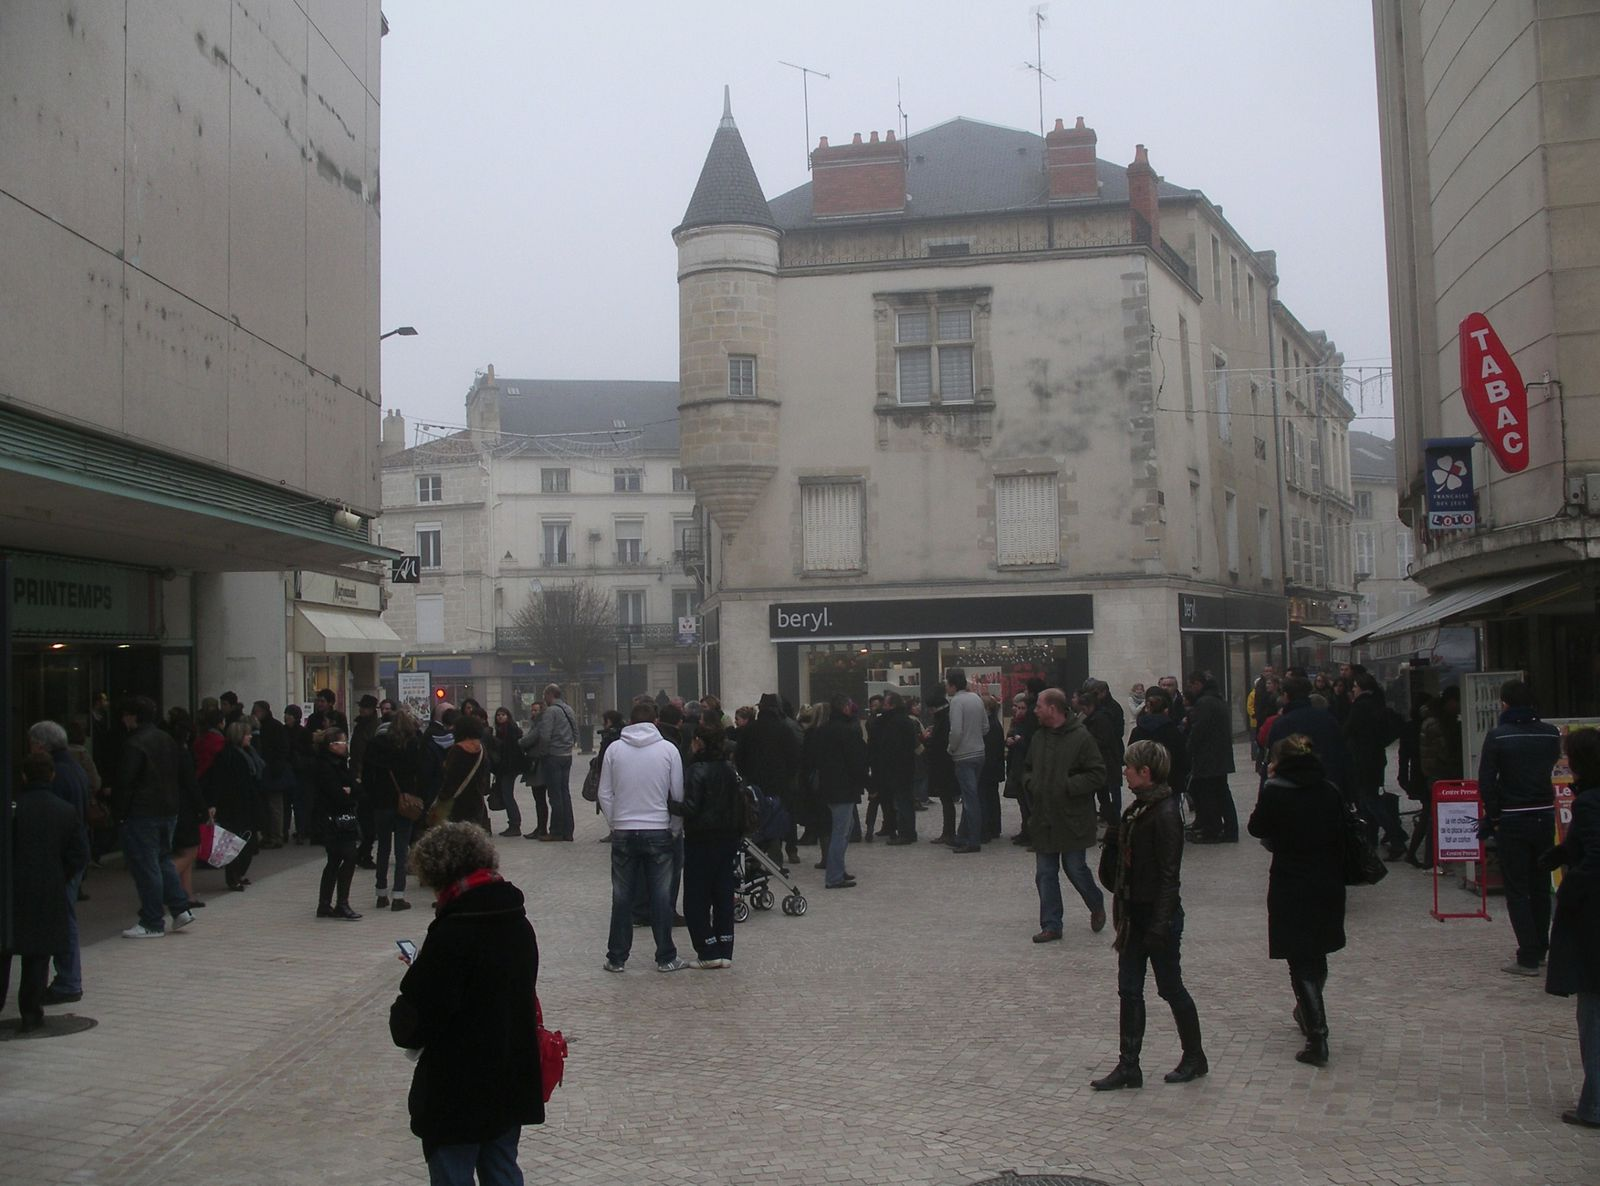 Queue-de-regulation-devant-magasin.JPG